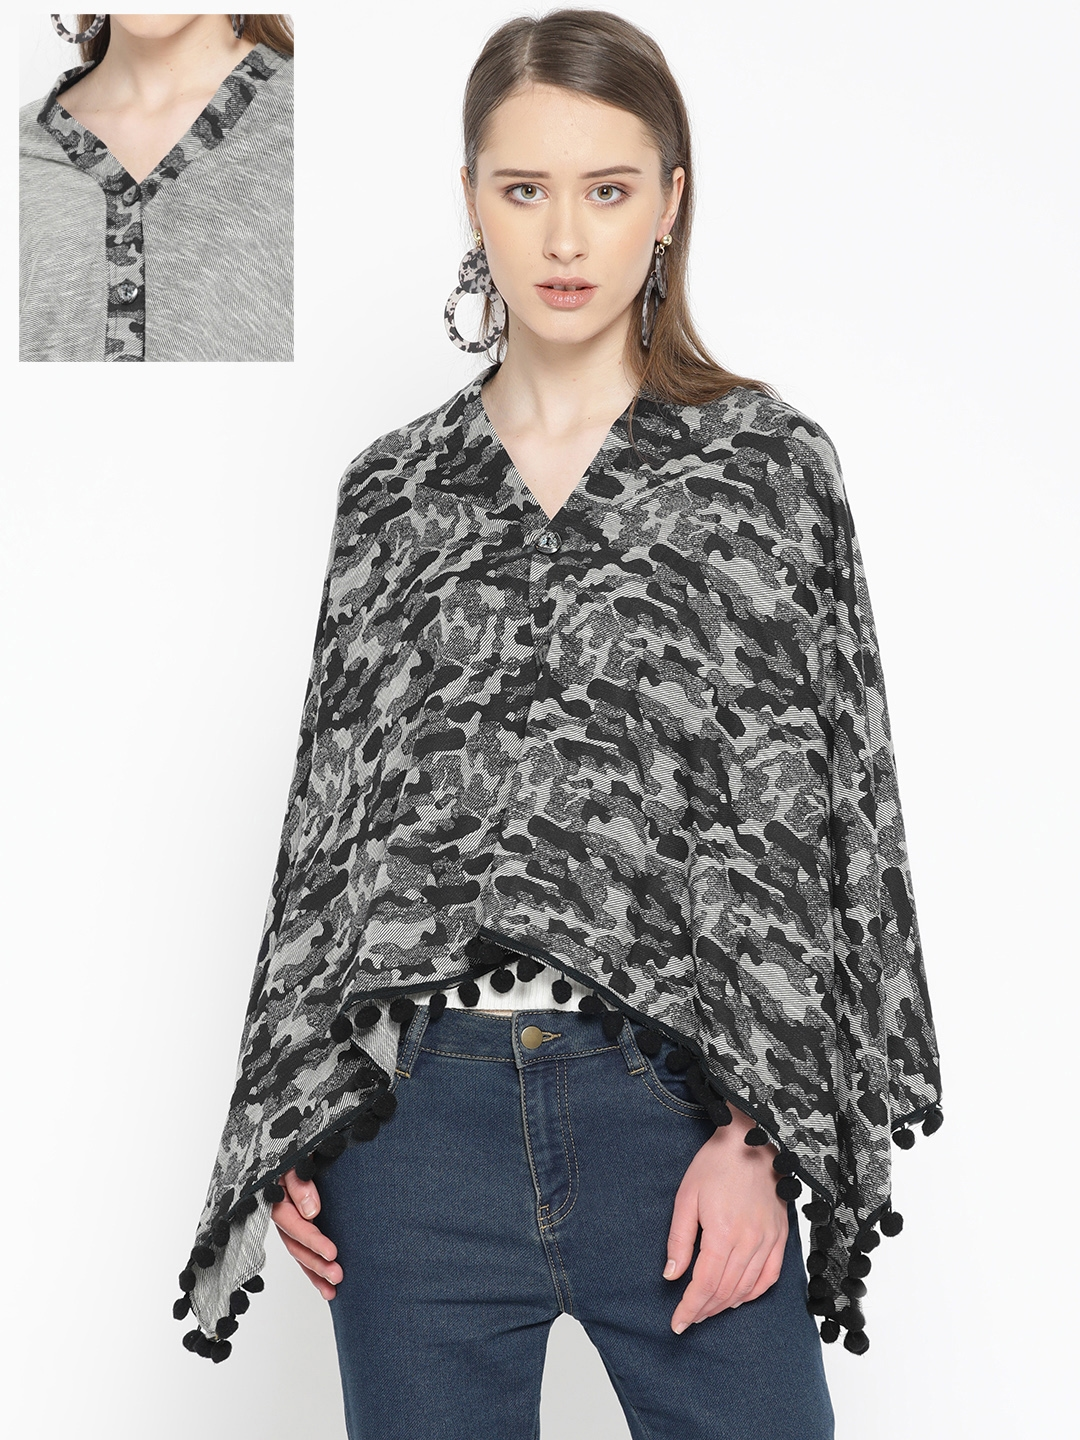 Skidlers Women Grey   Black Reversible Camouflage Print Button Shrug